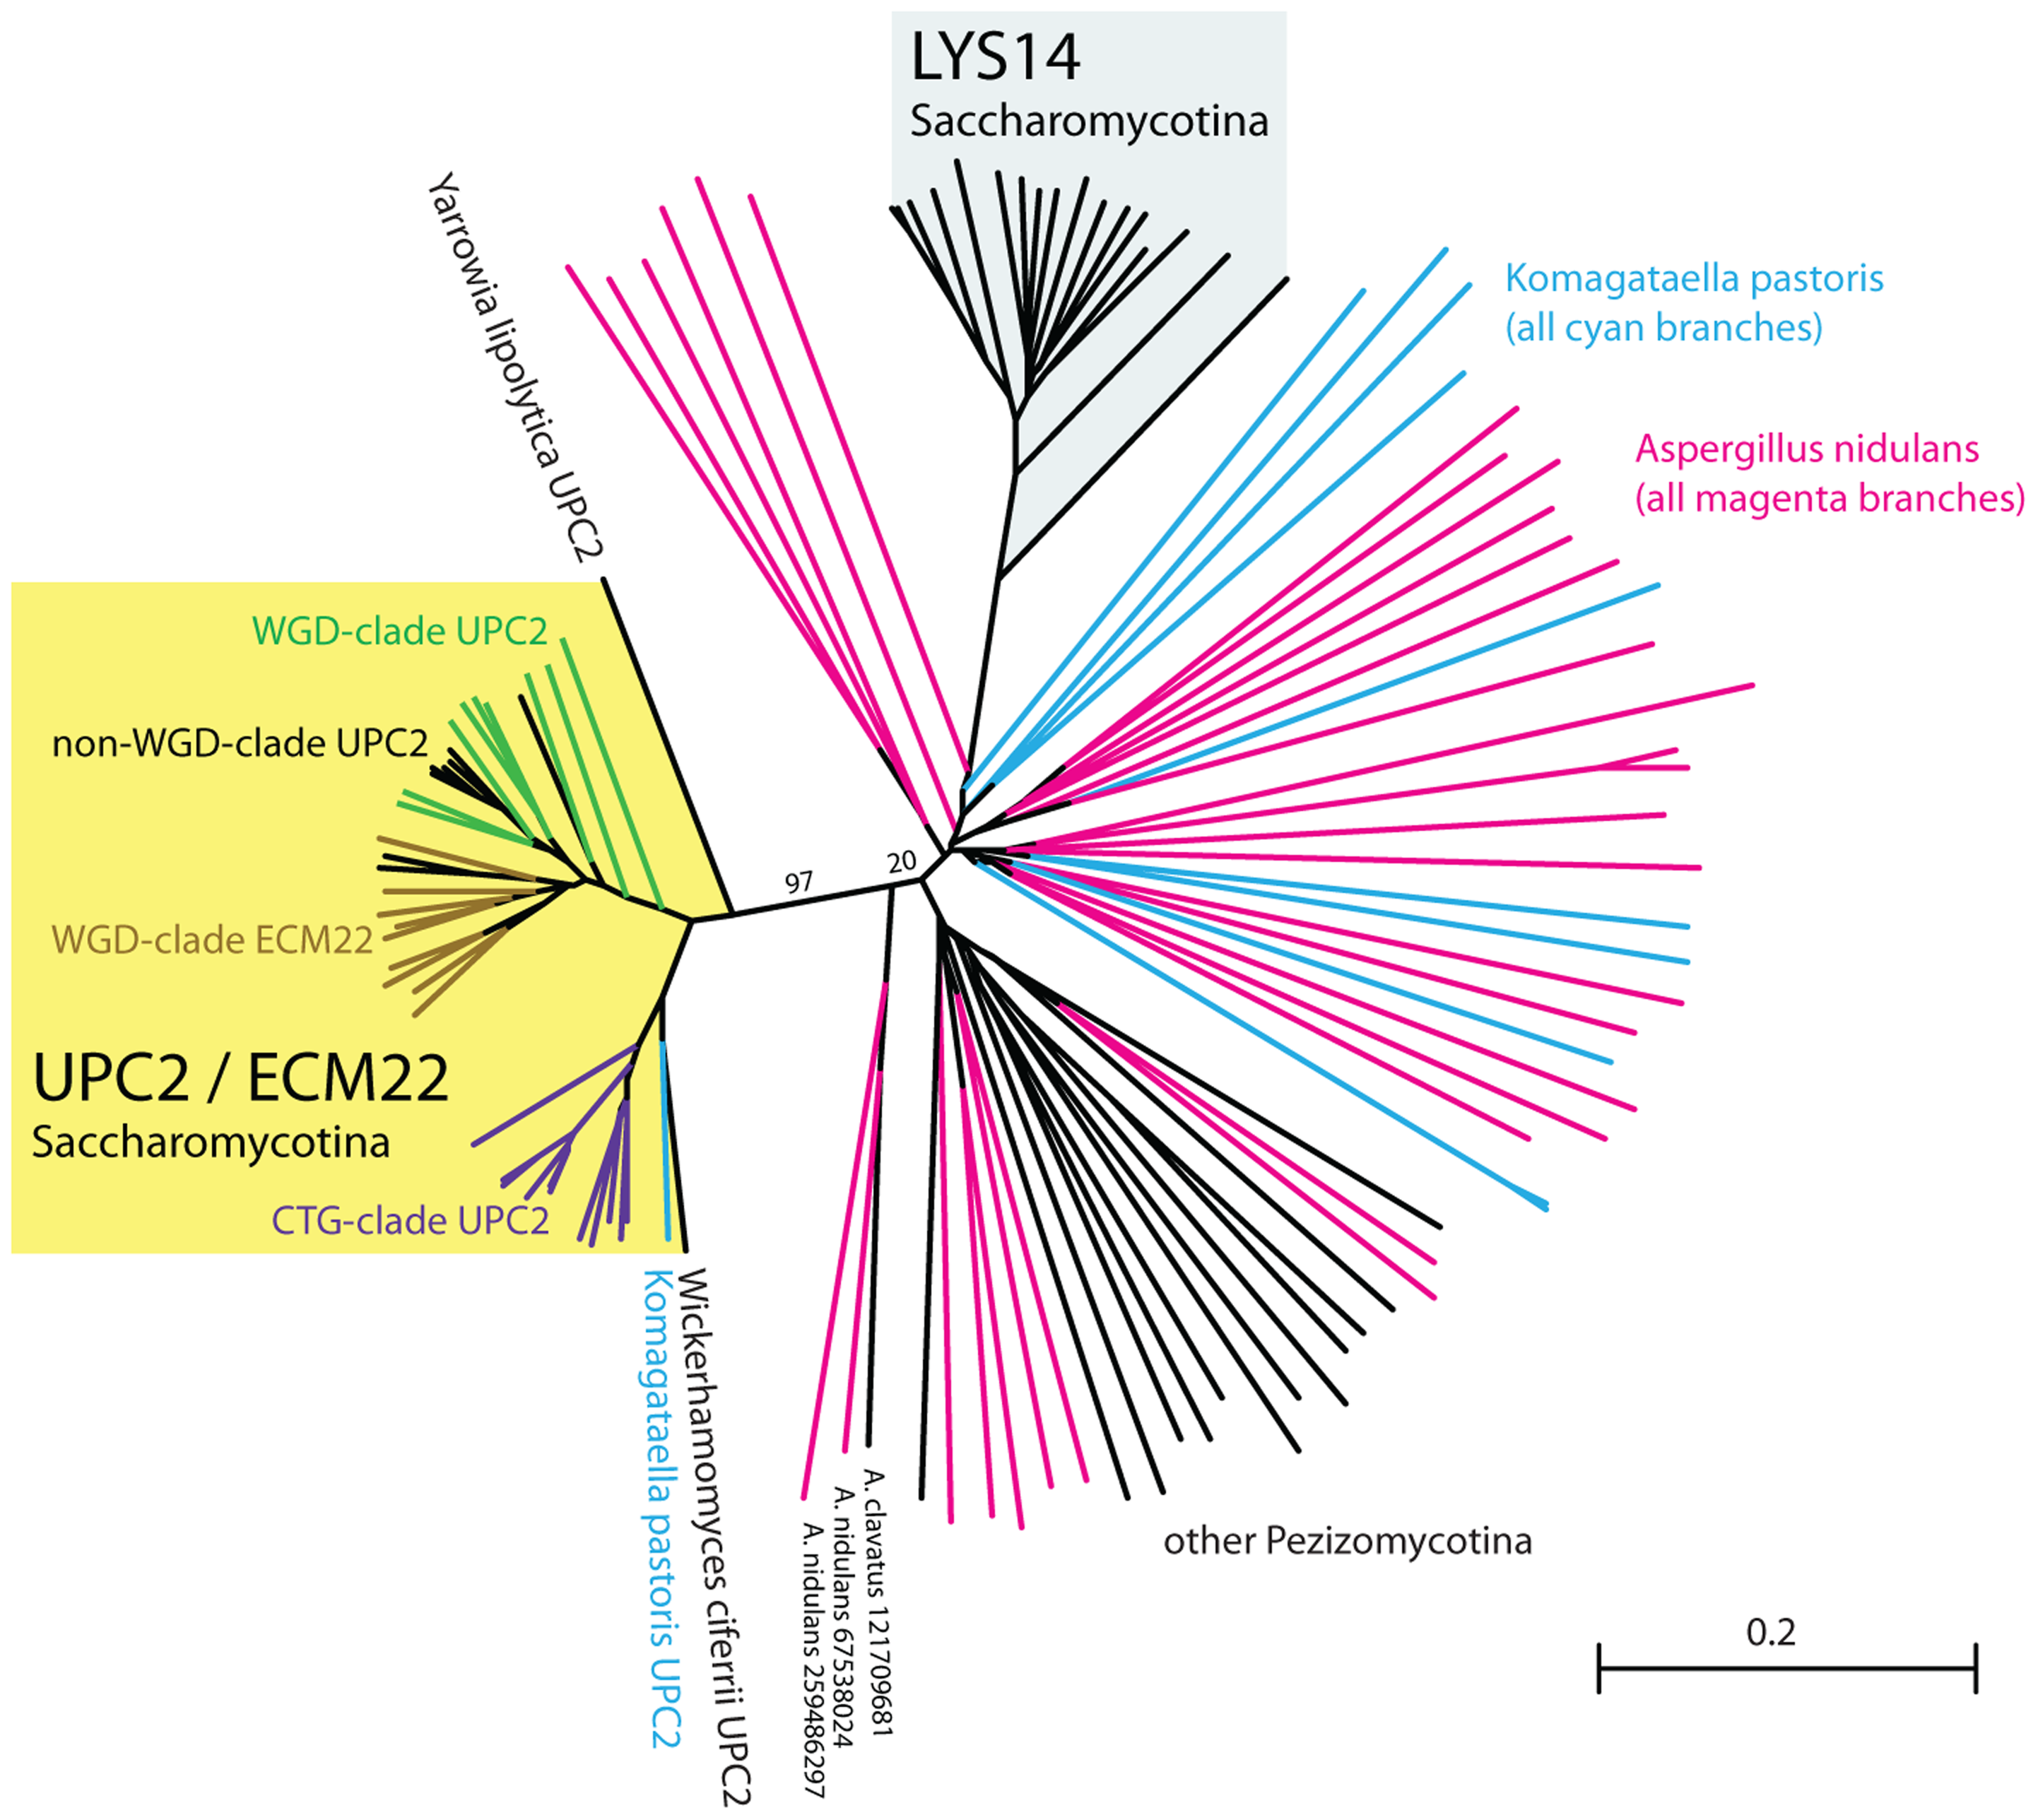 Upc2 has no clear orthologs outside the Saccharomycotina.